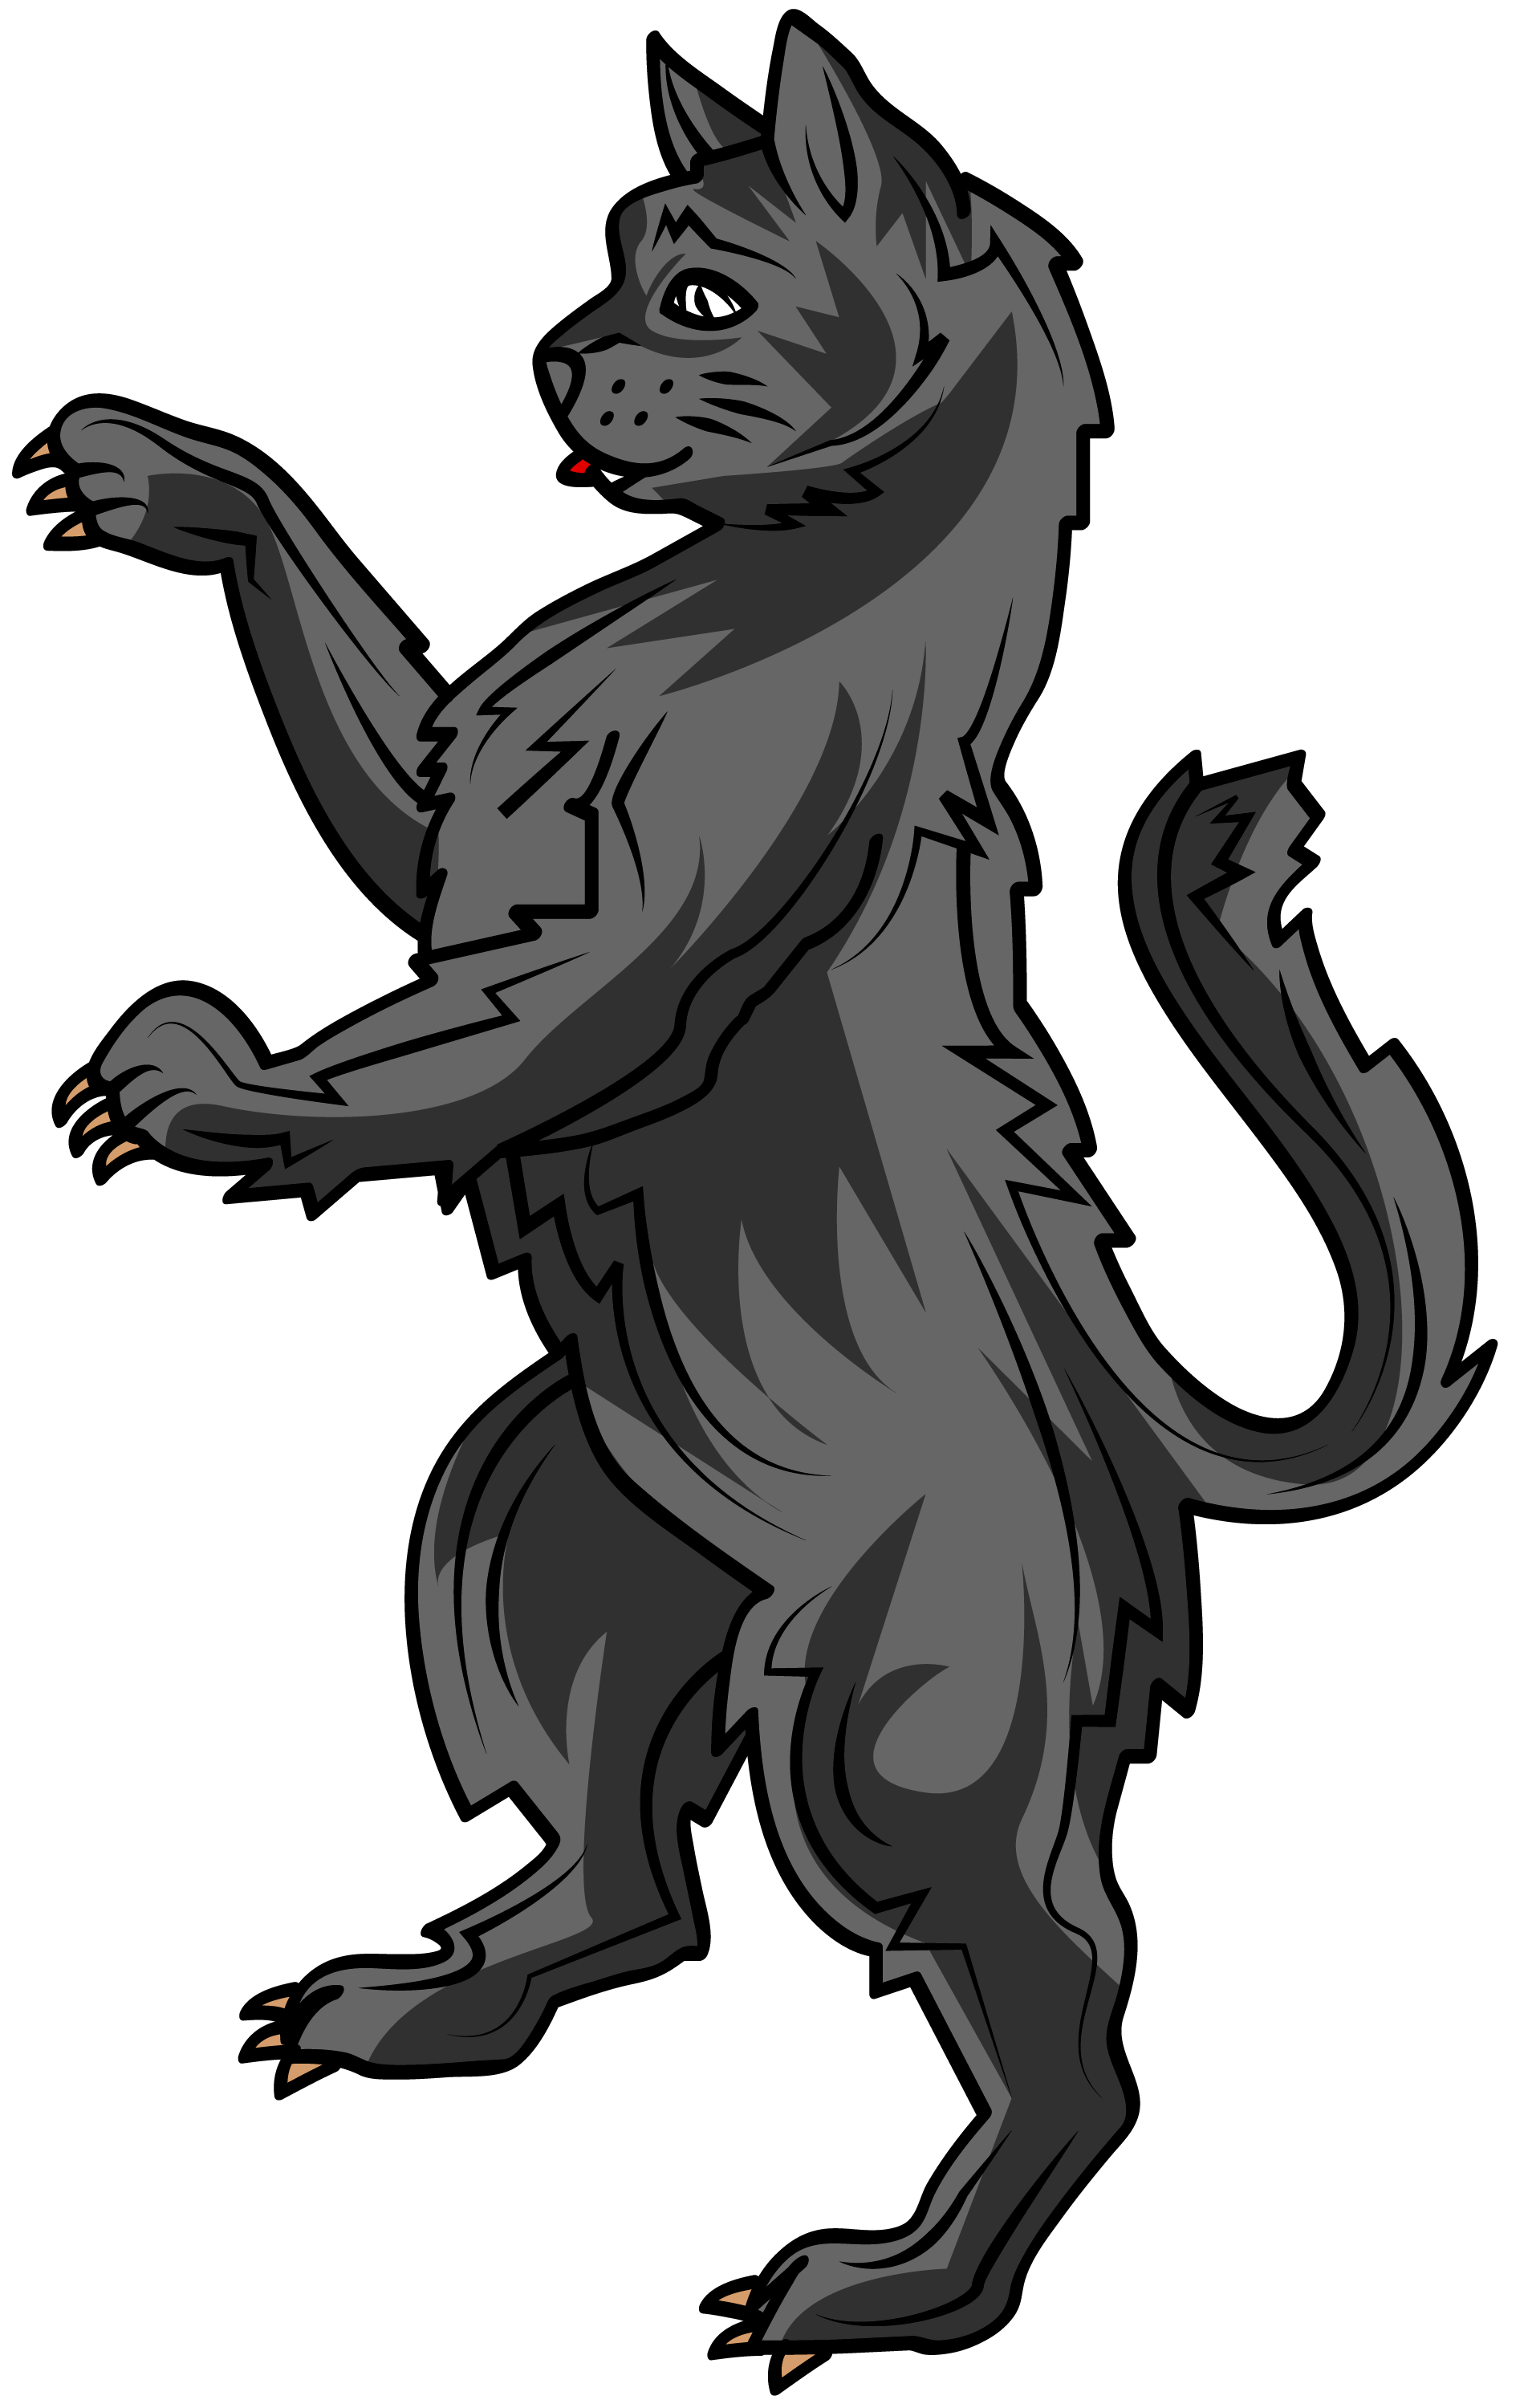 the cat in heraldry is a symbol of liberty, watchfulness ... Symbols Of Watchfulness